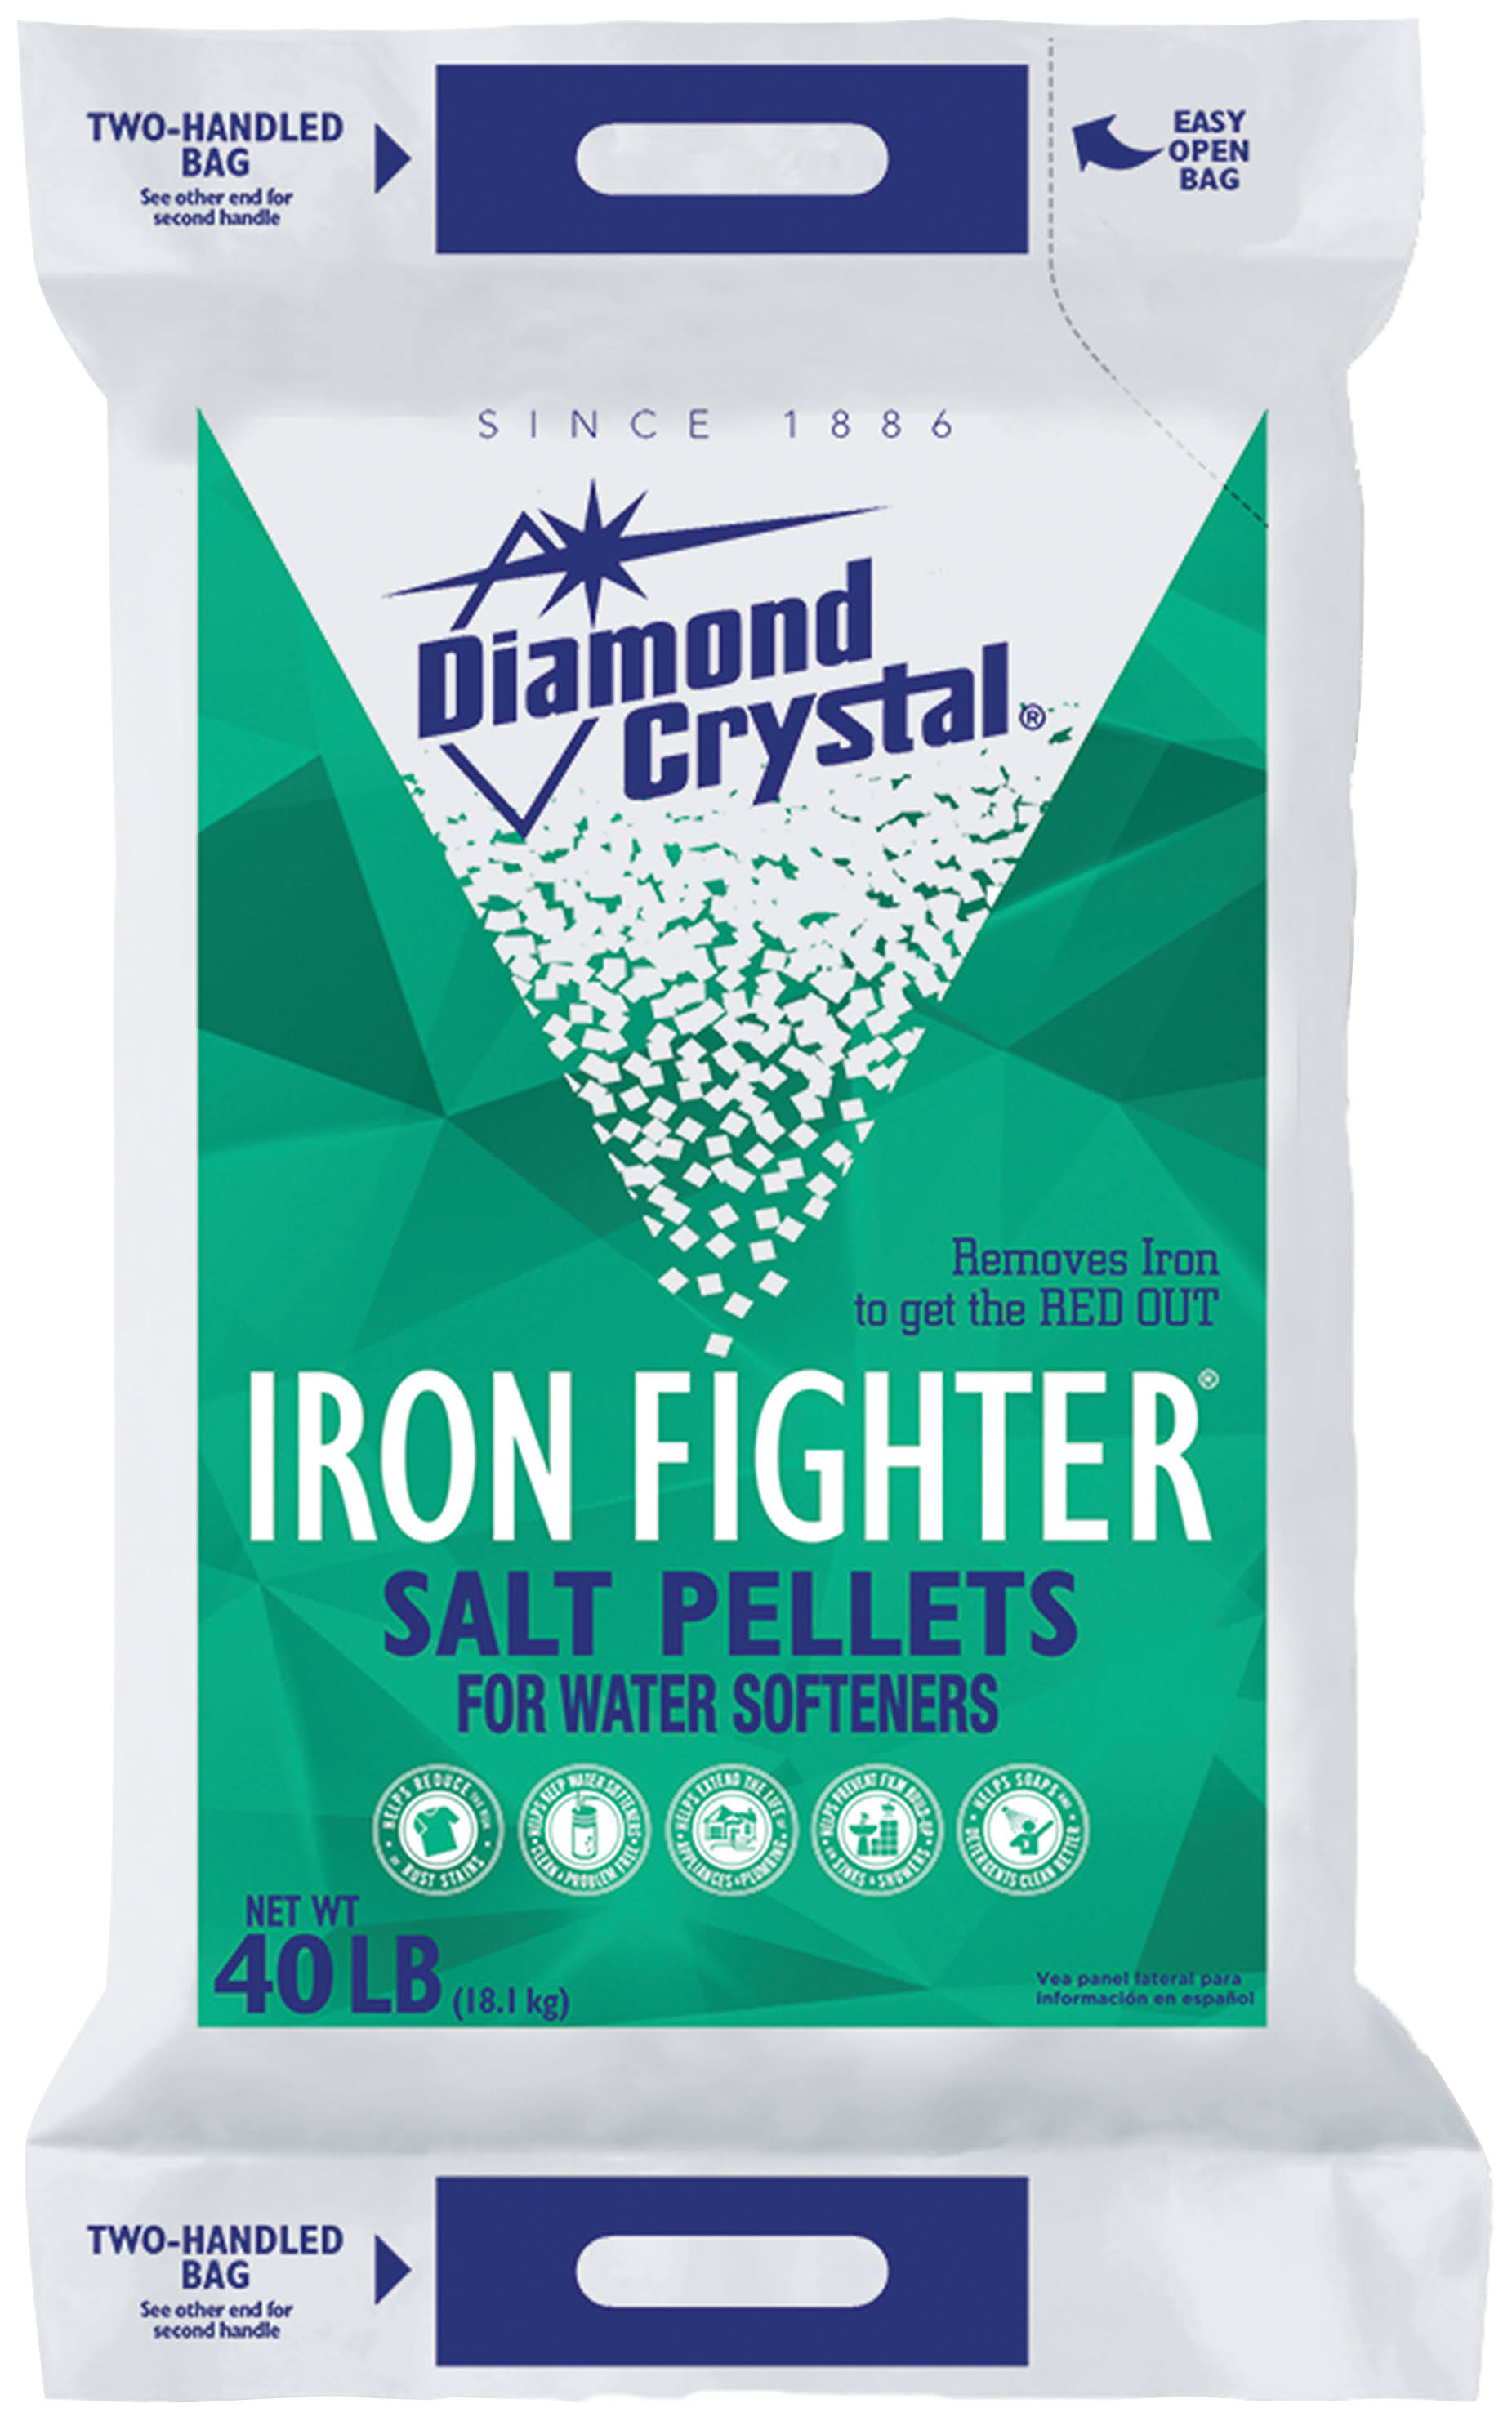 Diamond Crystal Iron Fighter Salt Pellets Bag - 40 lb